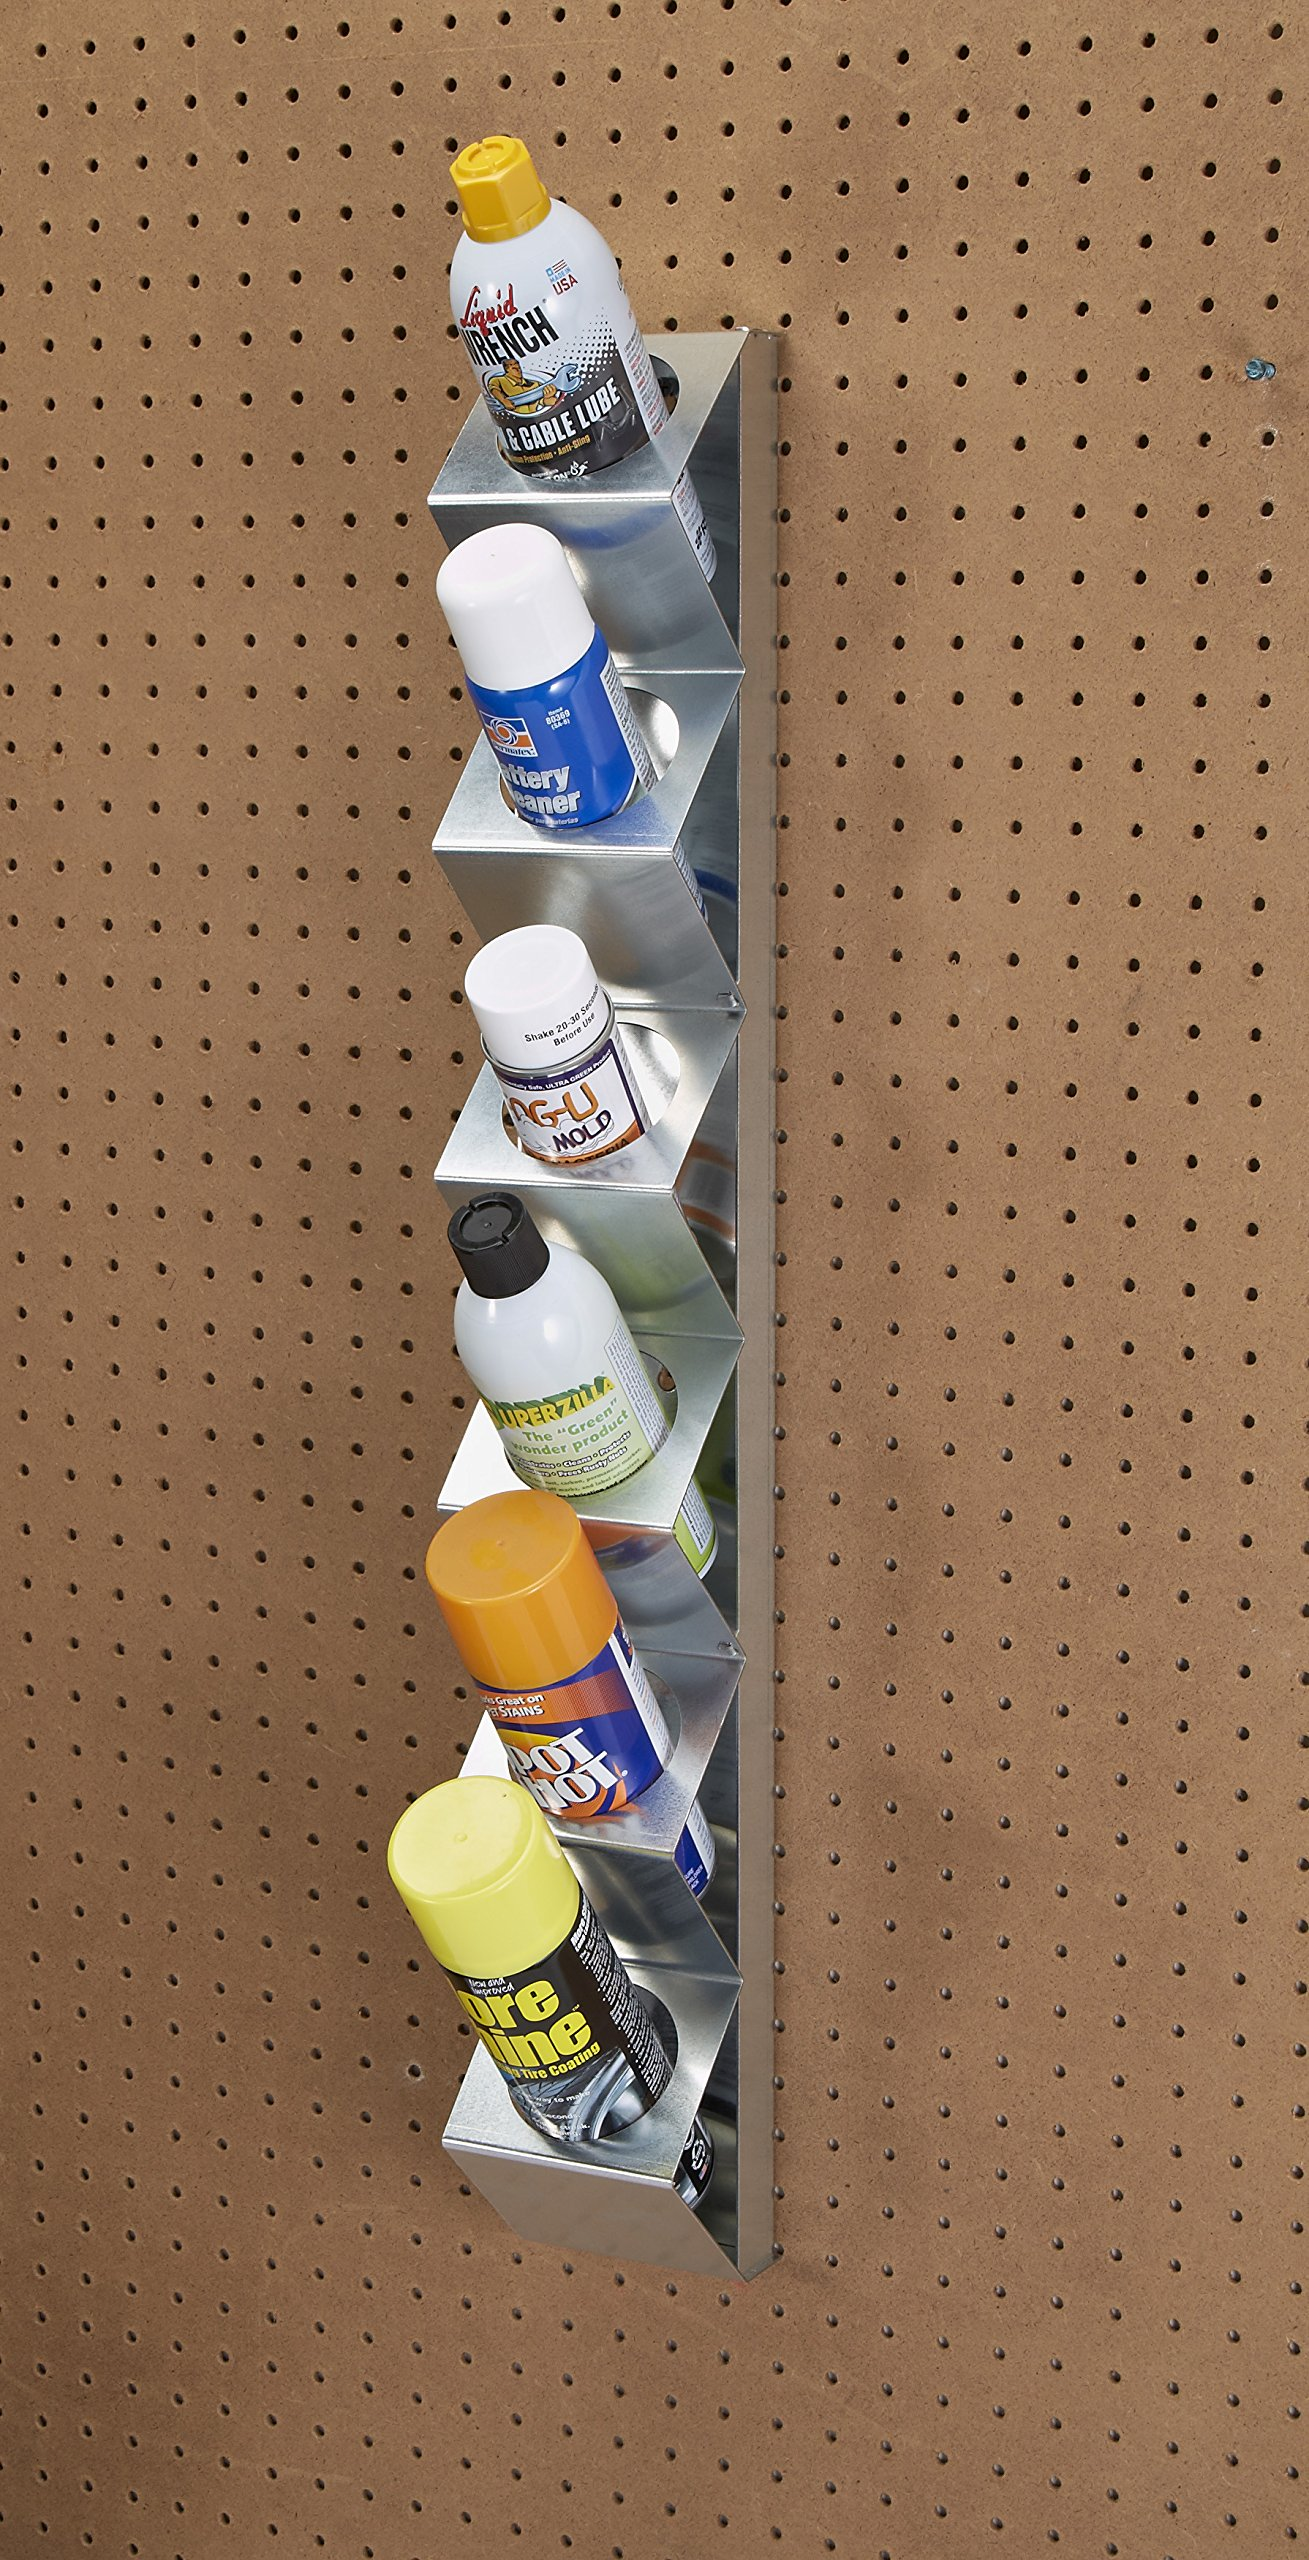 Vertical Can Storage Rack by Sporty's (Image #1)